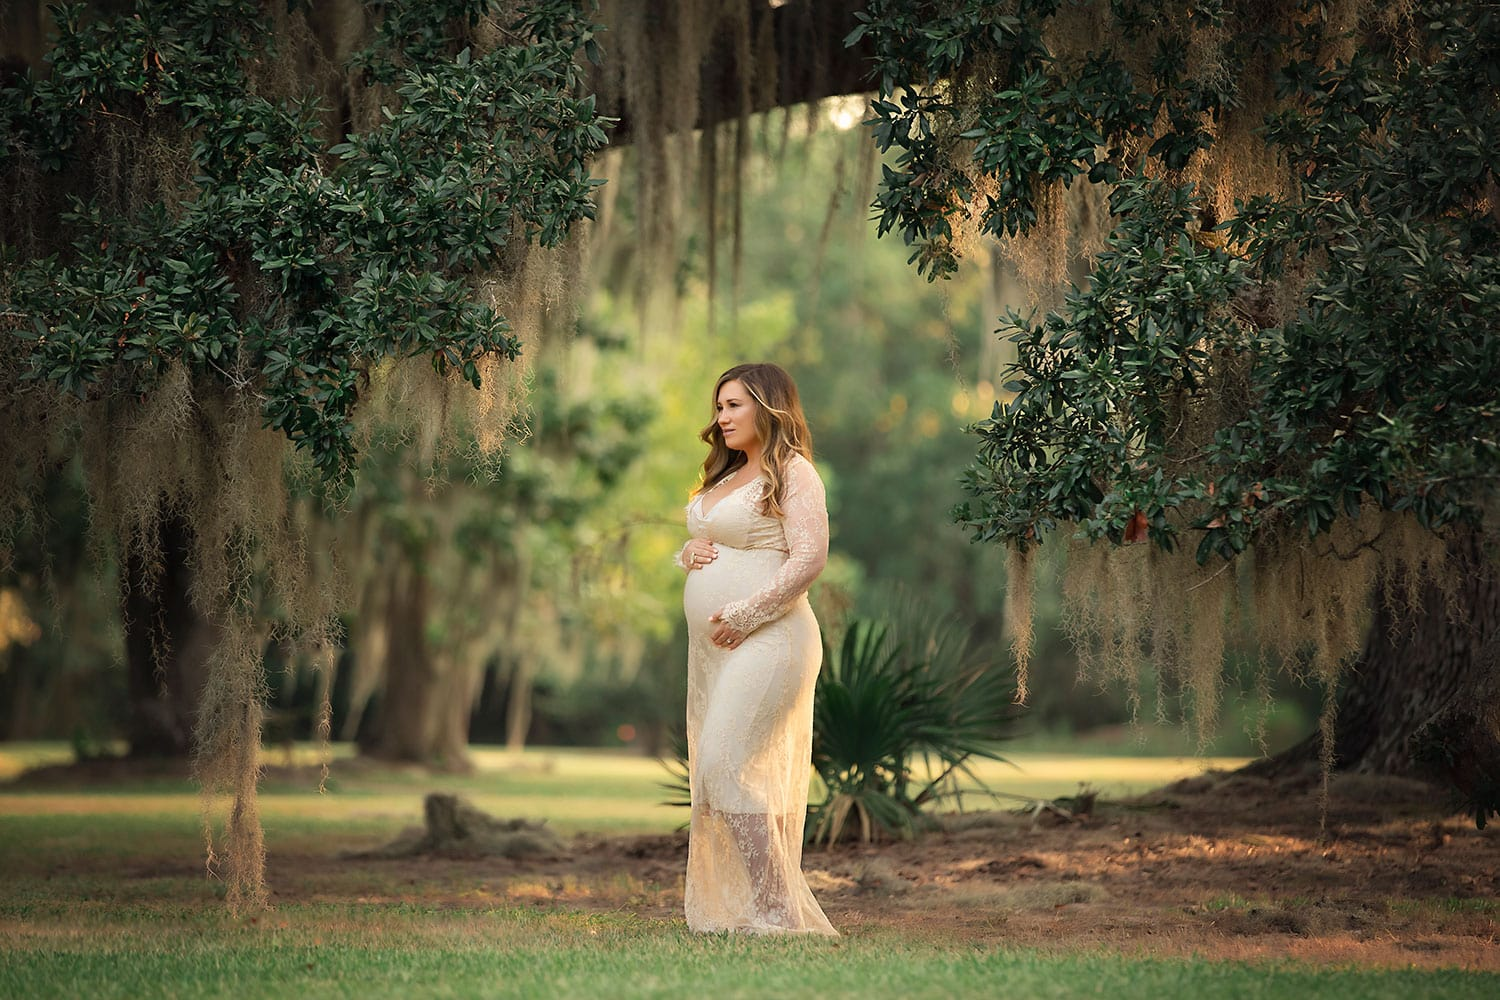 maternity session under the oak trees at Fontainebleau State Park